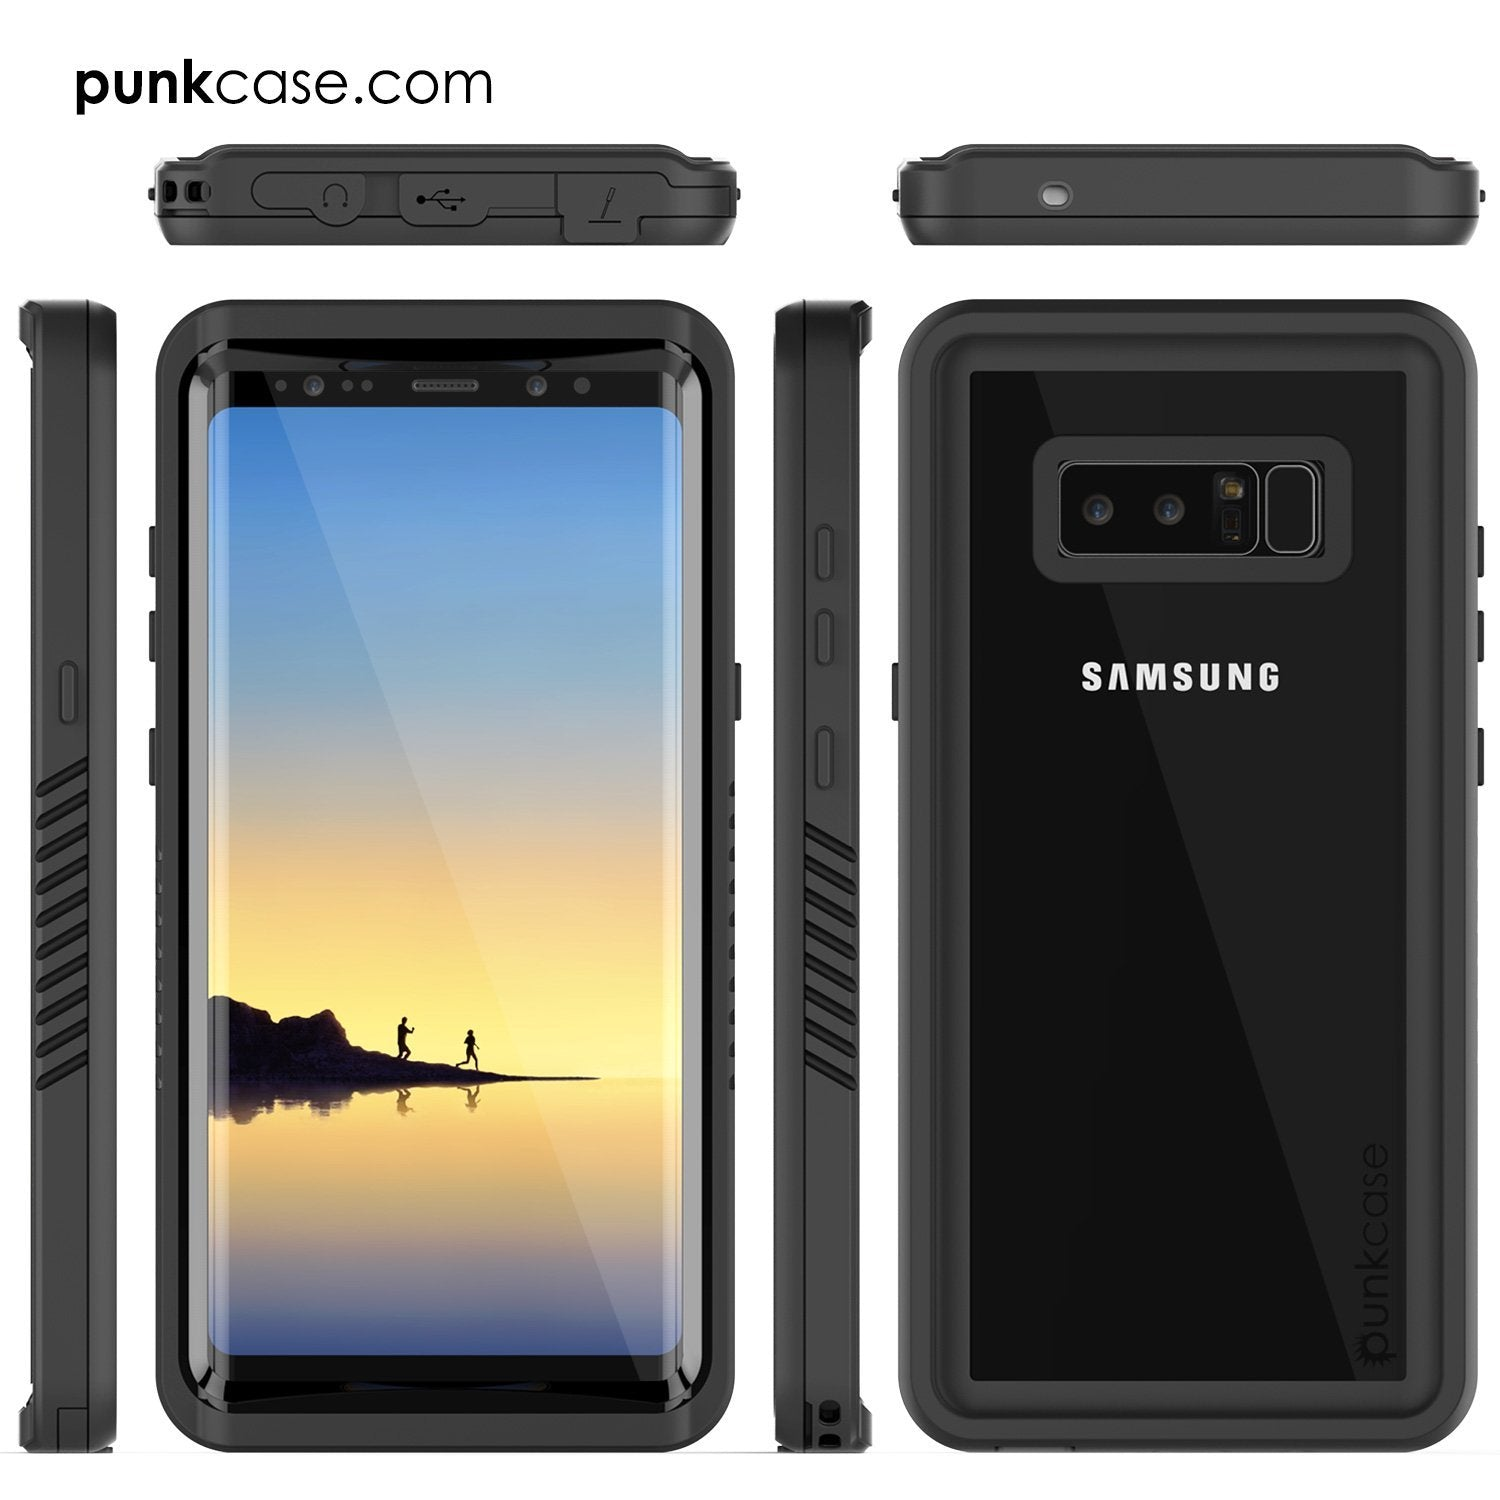 Galaxy Note 8 Punkcase Extreme Series W/ Built In Screen Case, Black